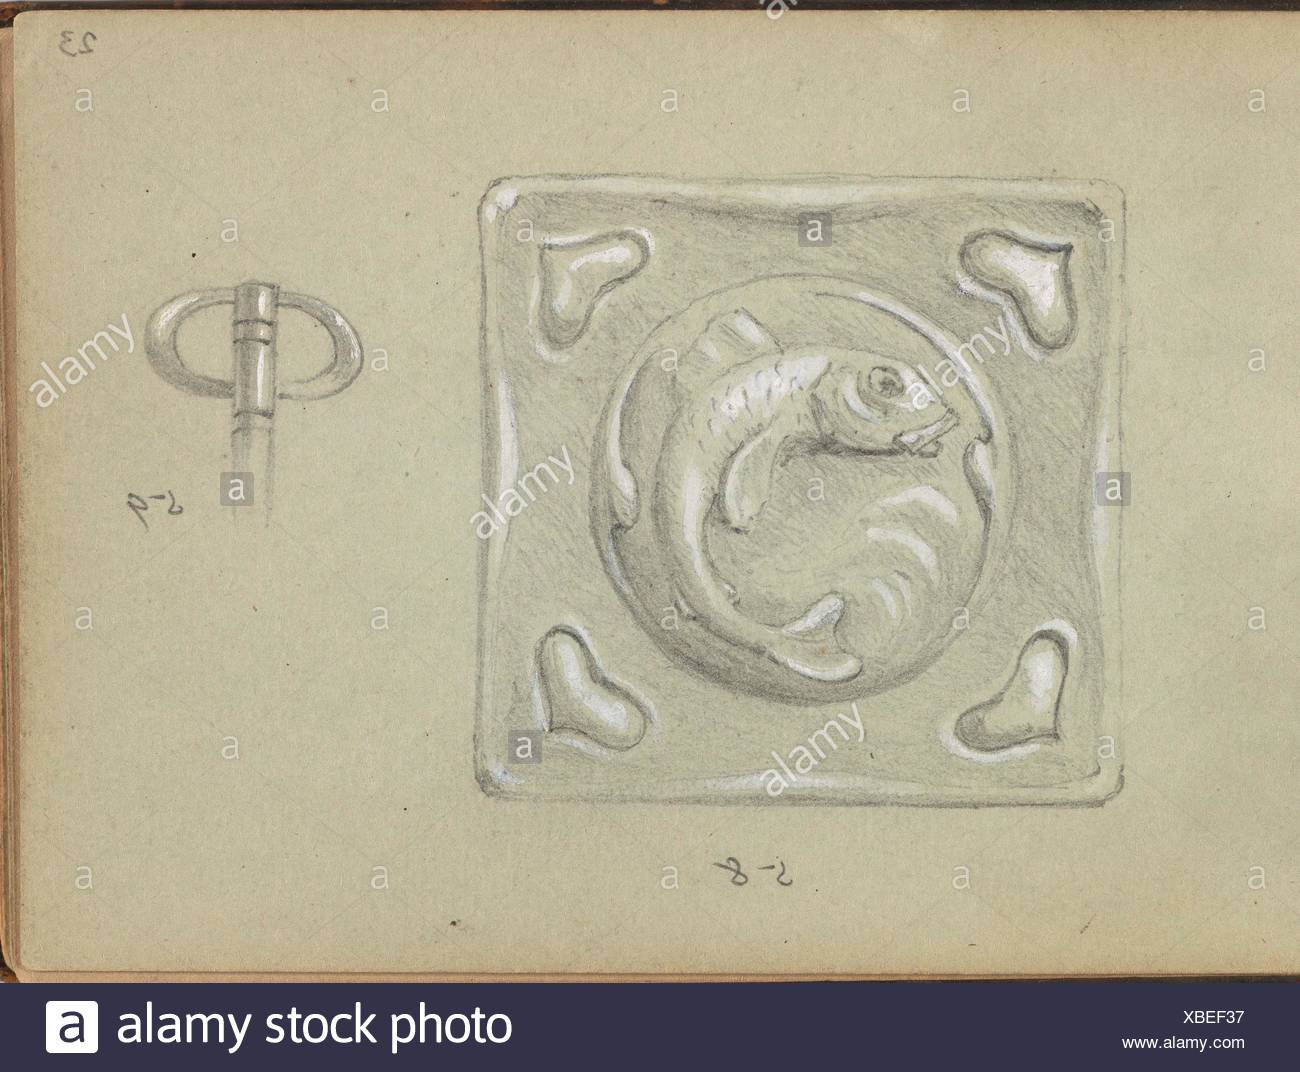 Design for a Decorative (Key?) Plate and a Key Grip. Artist: Edgar Gilstrap Simpson (British, 1867-1945 (presumed)); Date: 1899; Medium: Graphite and - Stock Image